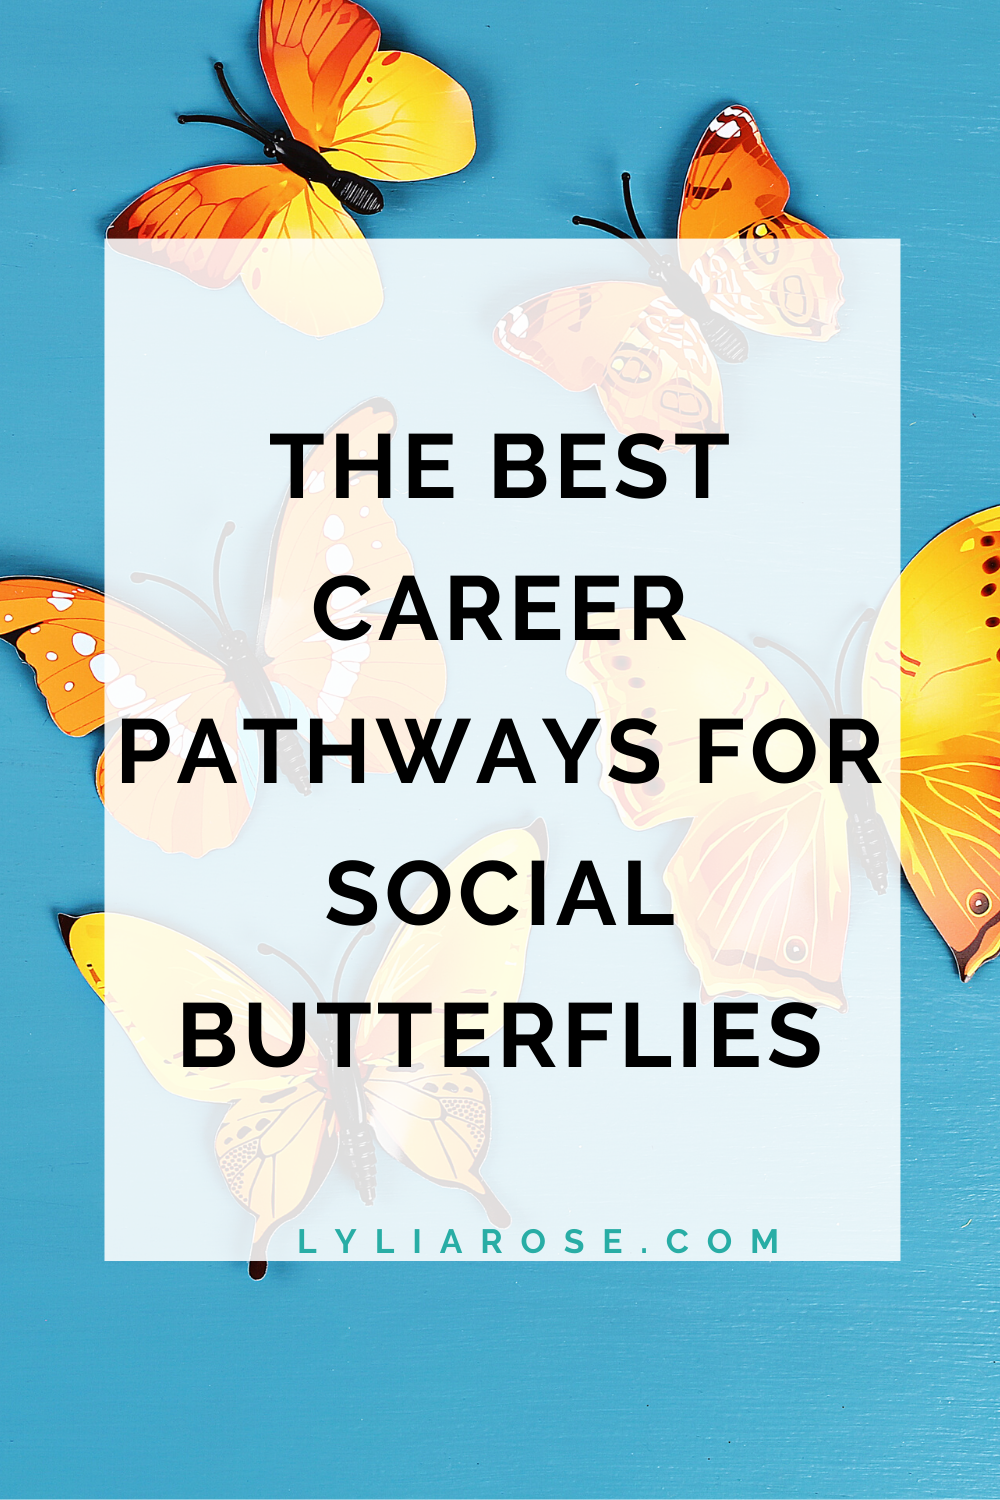 The best career pathways for social butterflies